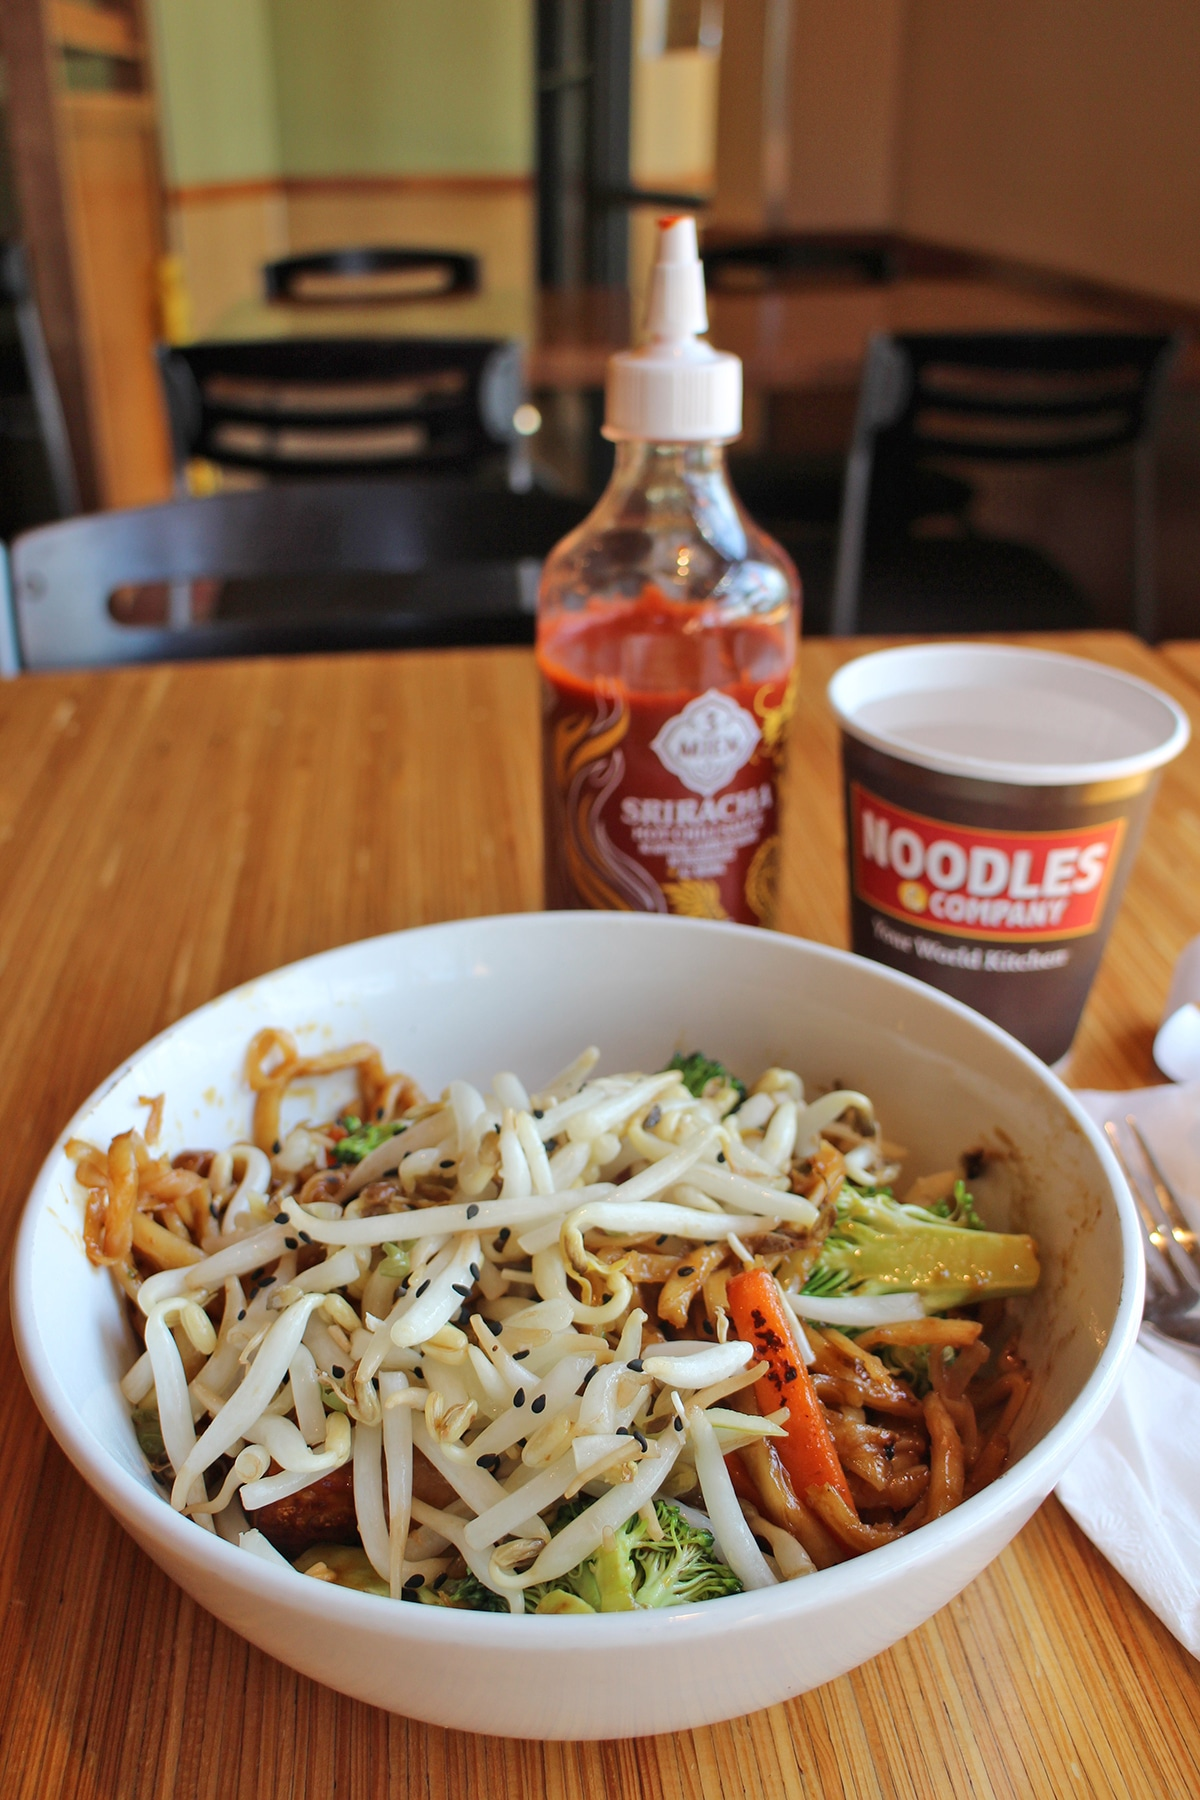 Bowl with Japanese pan noodles, sriracha, and paper cup at Noodles & Company.